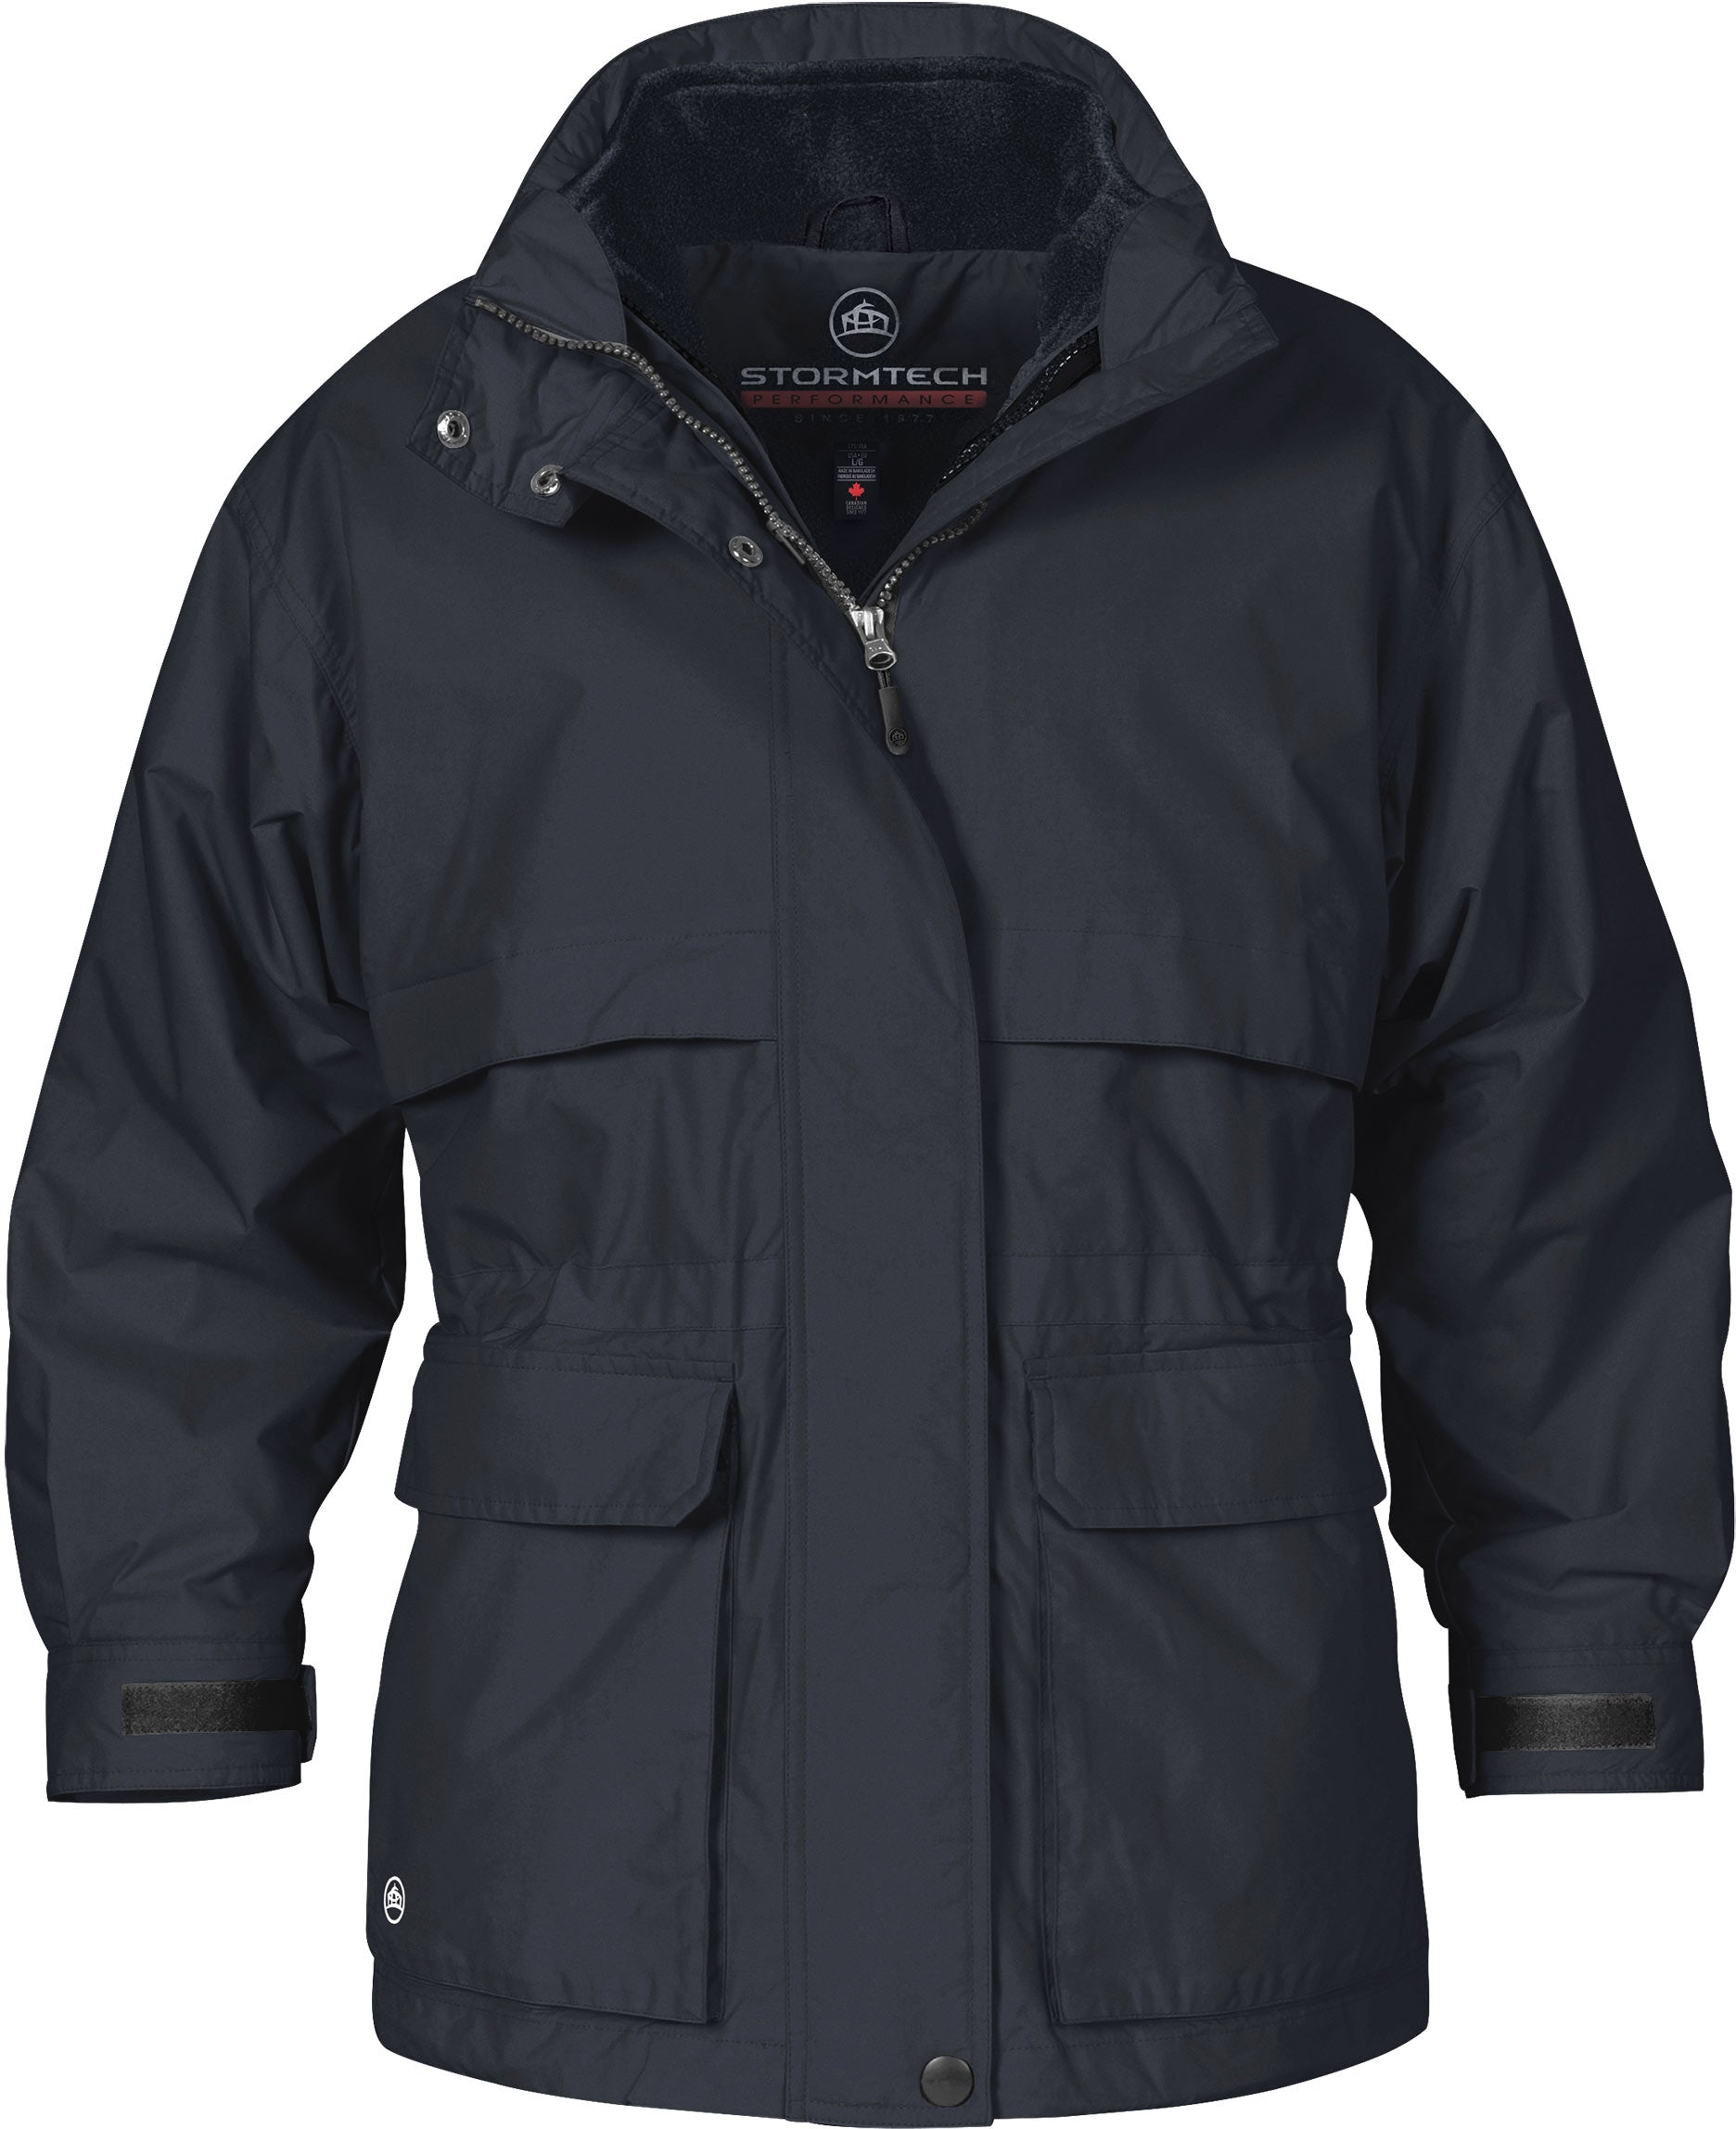 STORMTECH LADIES EXPLORER 3-IN-1 SYSTEM PARKA